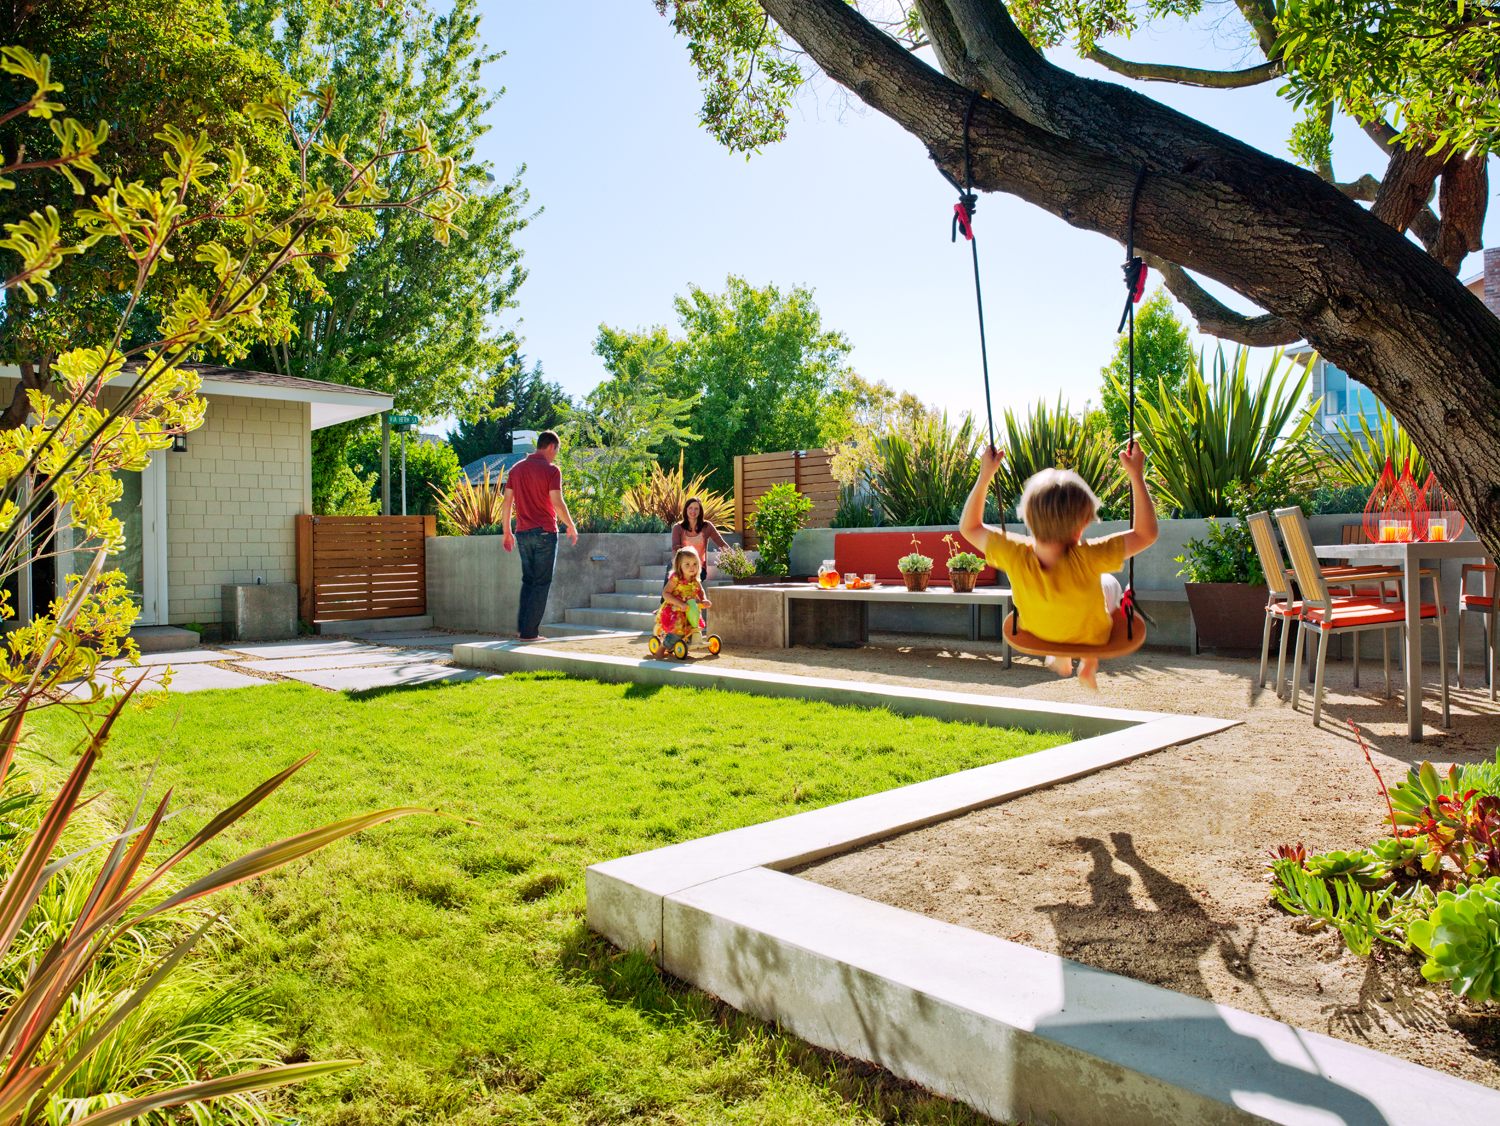 Roof Design Ideas: Awesome Backyard Ideas For Kids